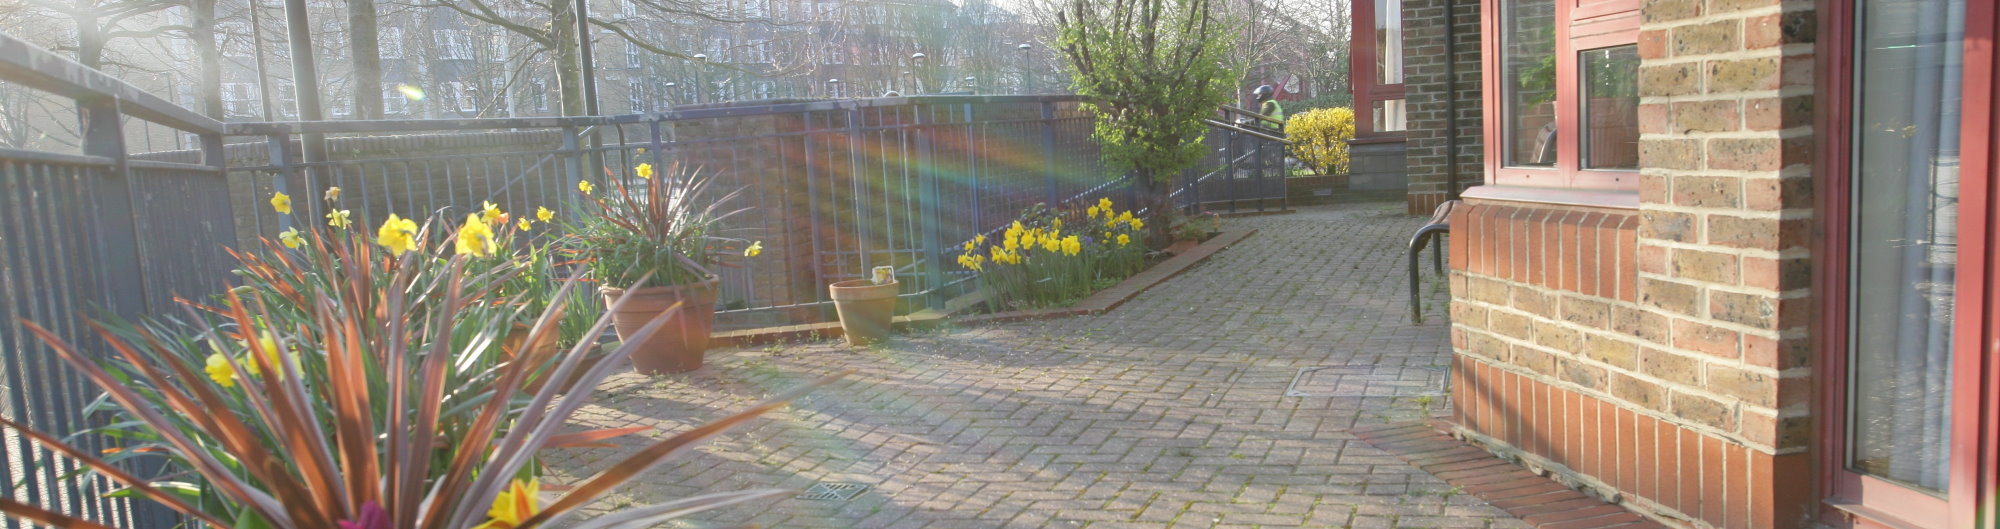 Rotherhithe Waterside Patio Area Image